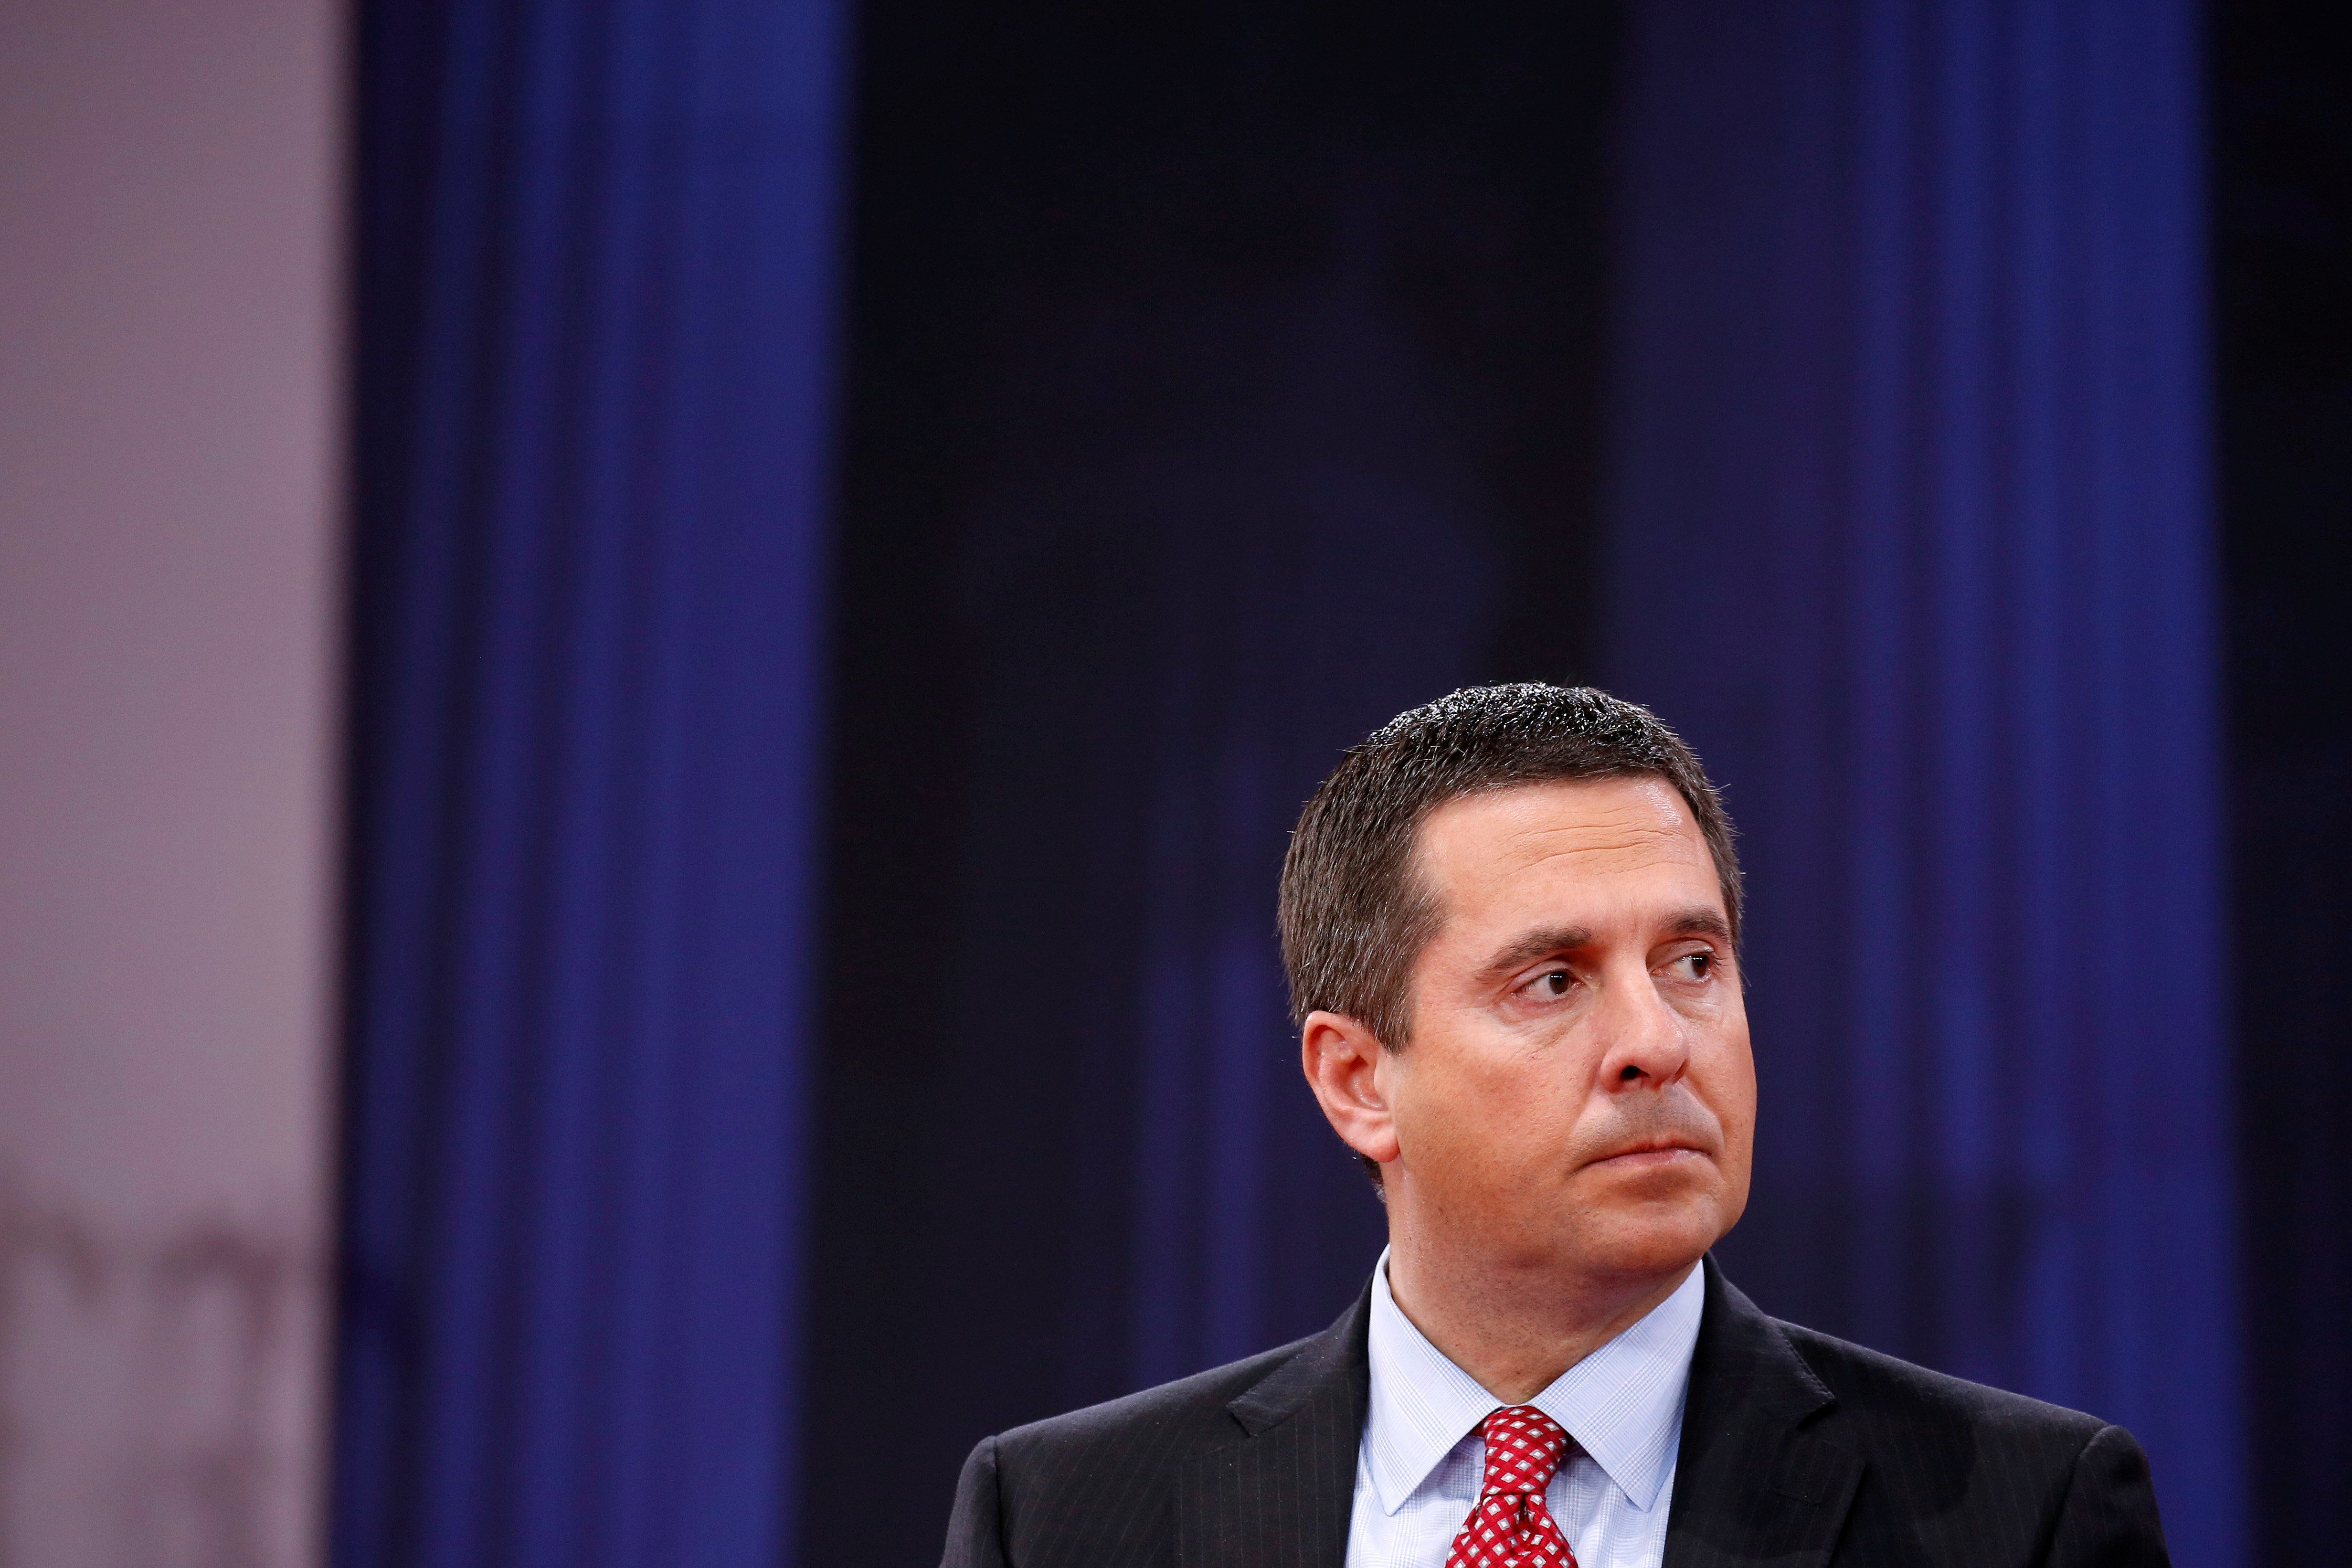 Rep. Devin Nunes (R-Calif.), the chairman of the House Intelligence Committee, said he publicly supports the removal of Deput